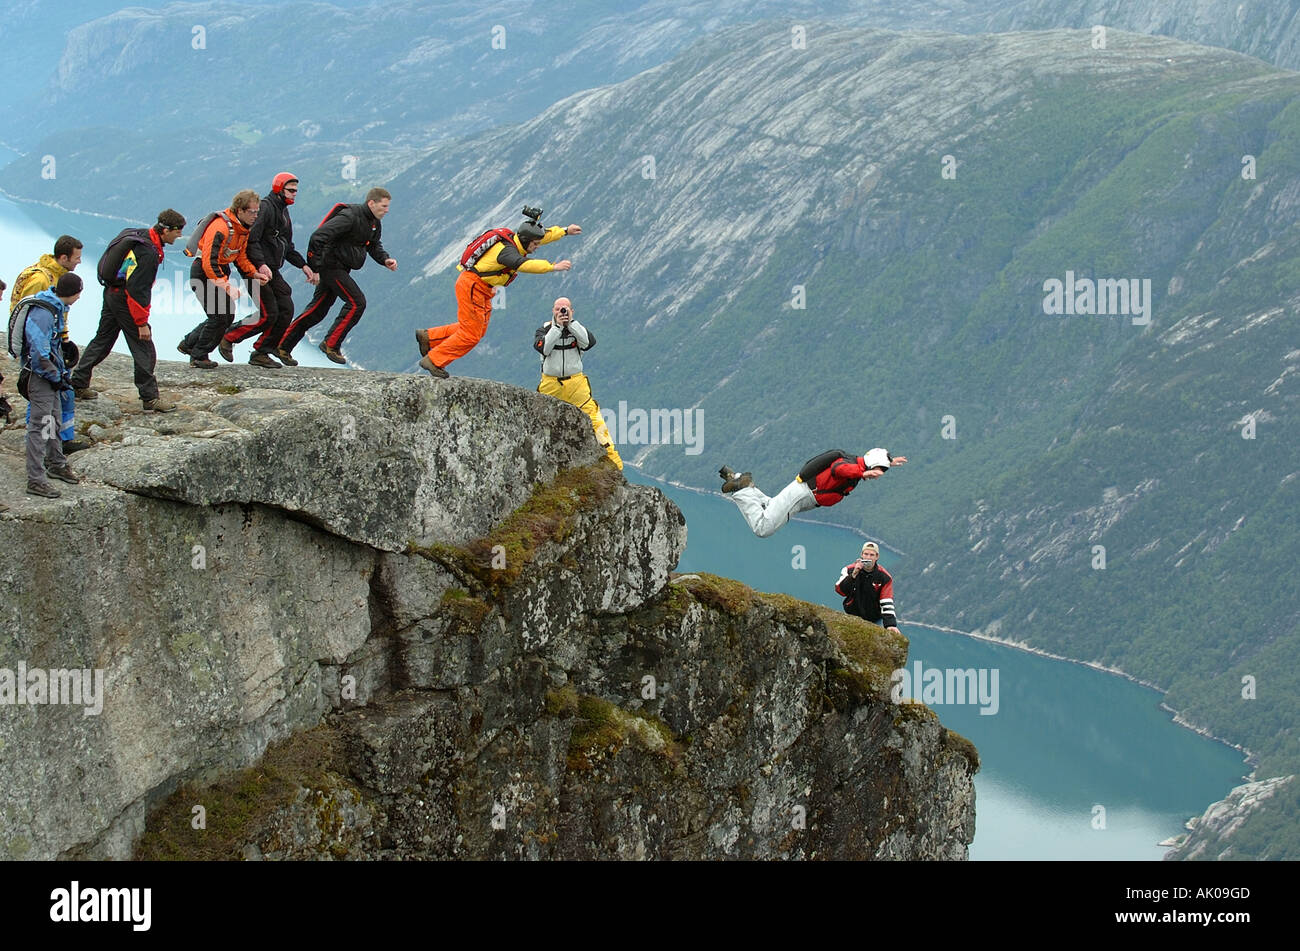 Group of BASE jumpers jumping - Stock Image